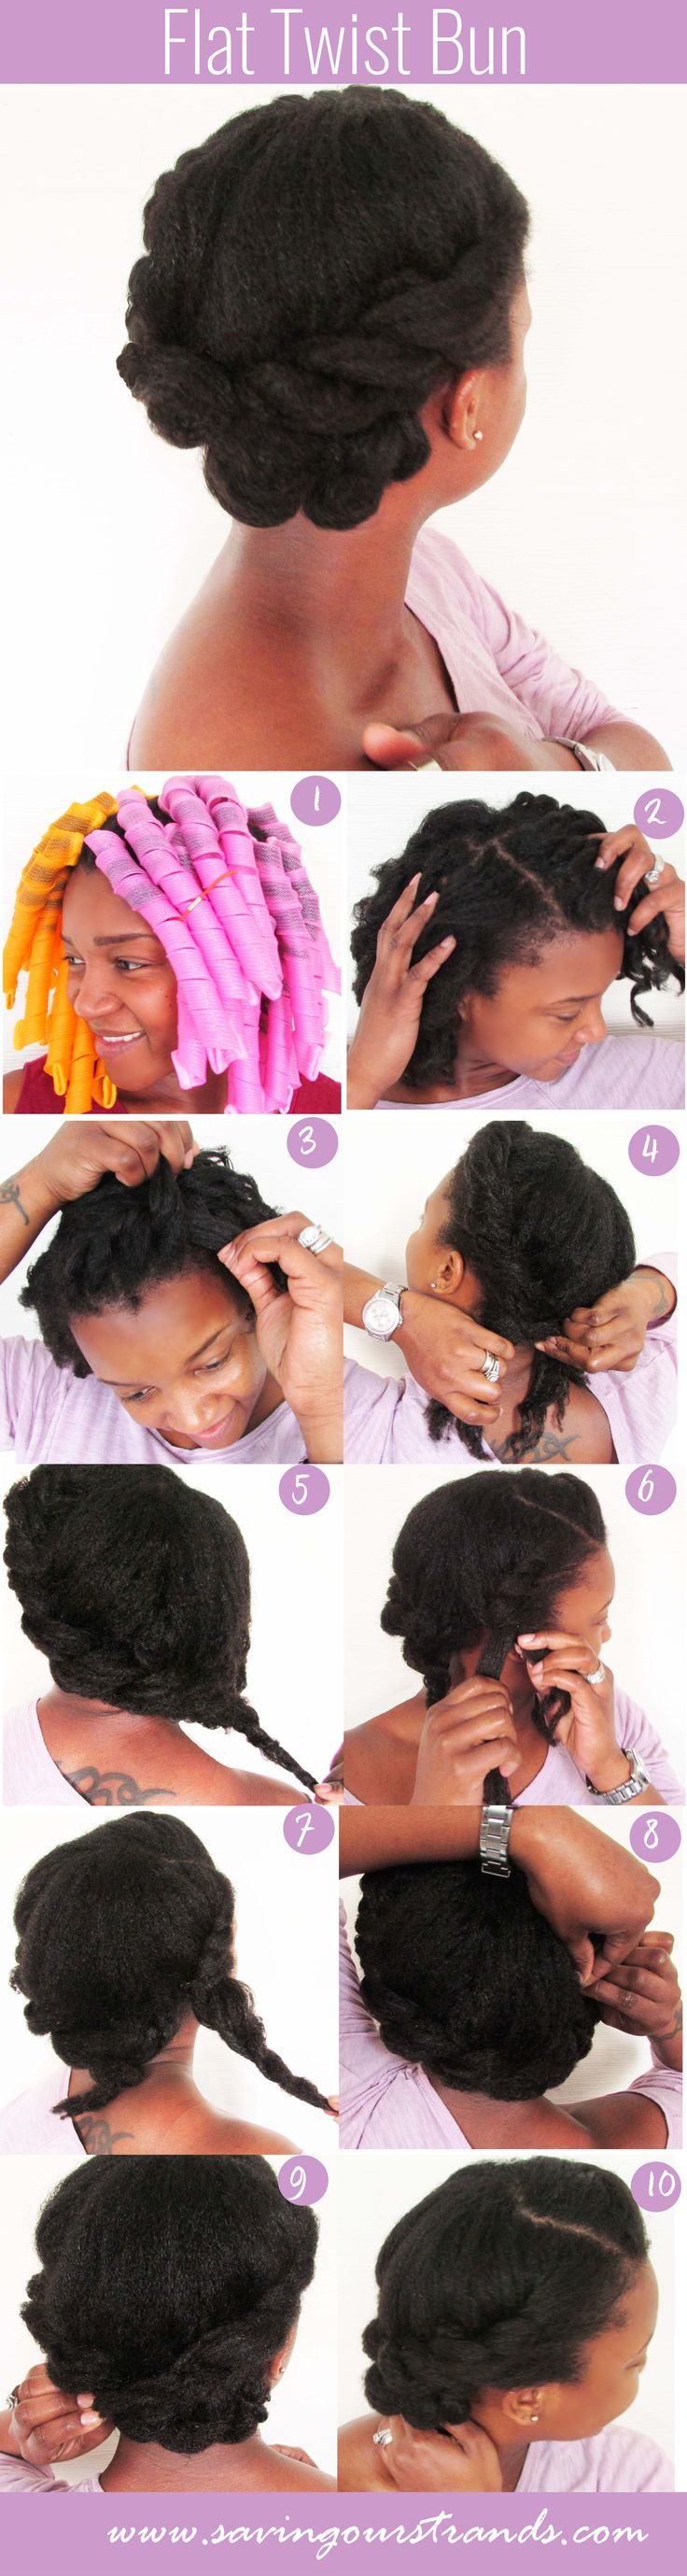 Soft and Romantic updo hairstyle tutorial for natural hair @SavingOurStrand